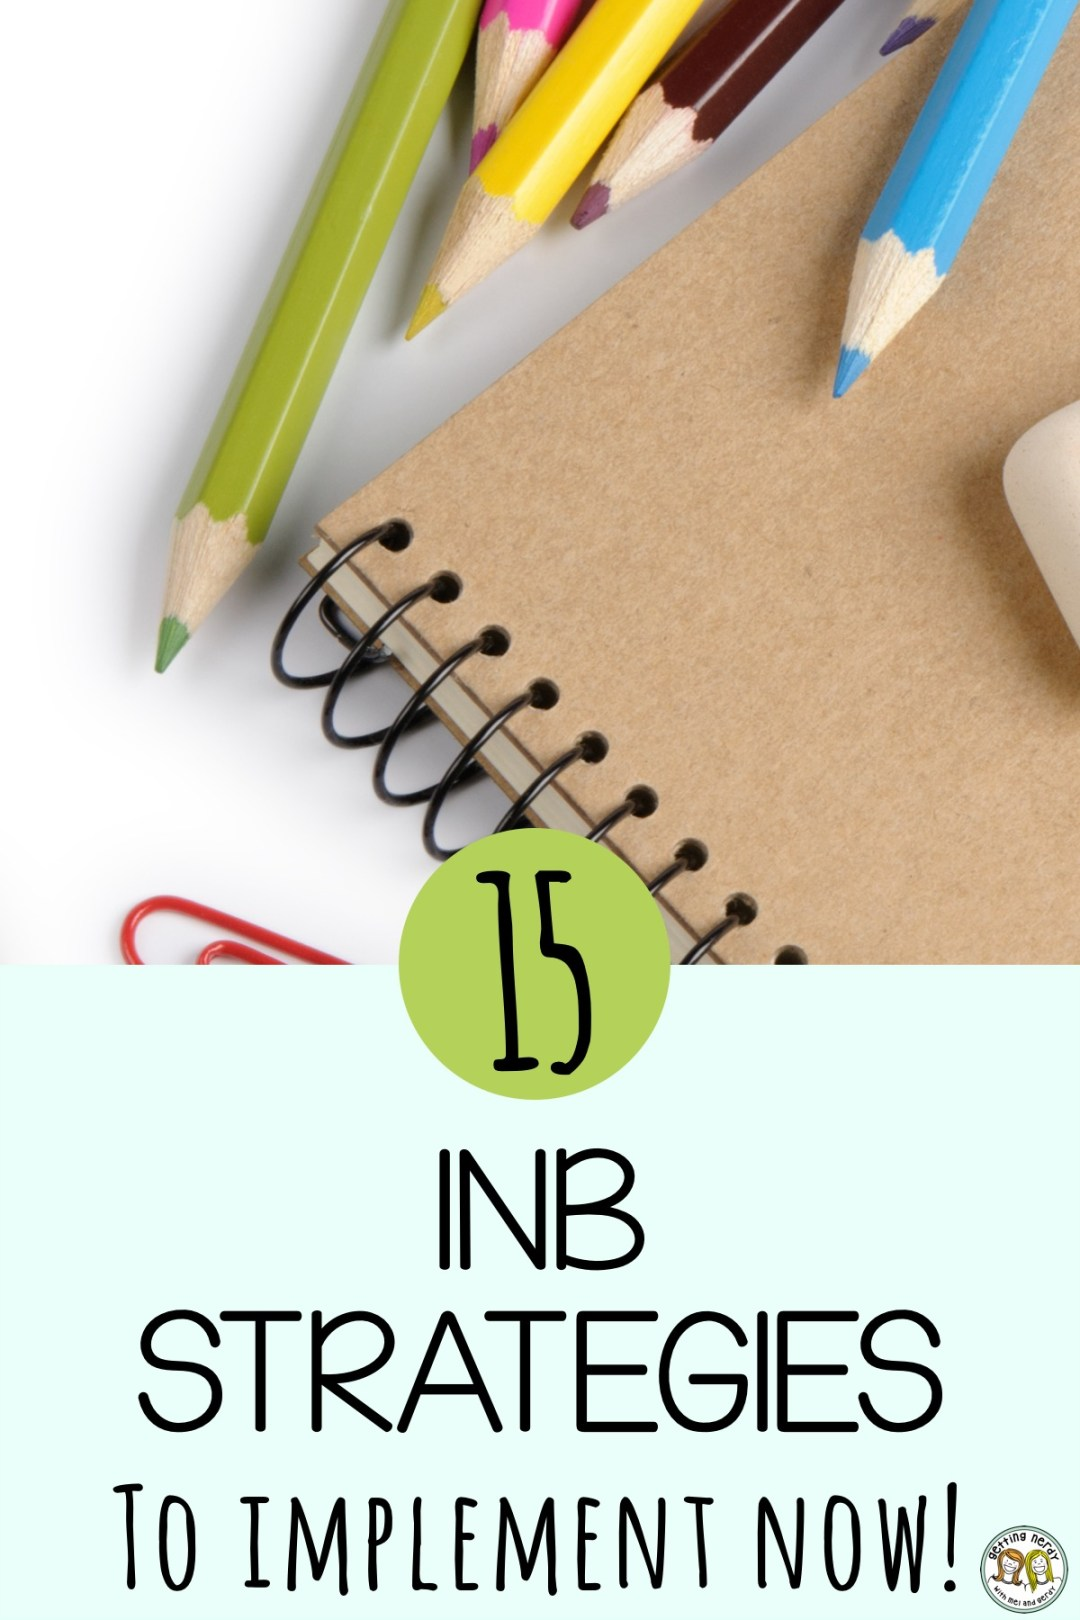 We came up with these easy actionable tips for implementing interactive notebooks in your classroom #gettingnerdyscience #interactivenotebook